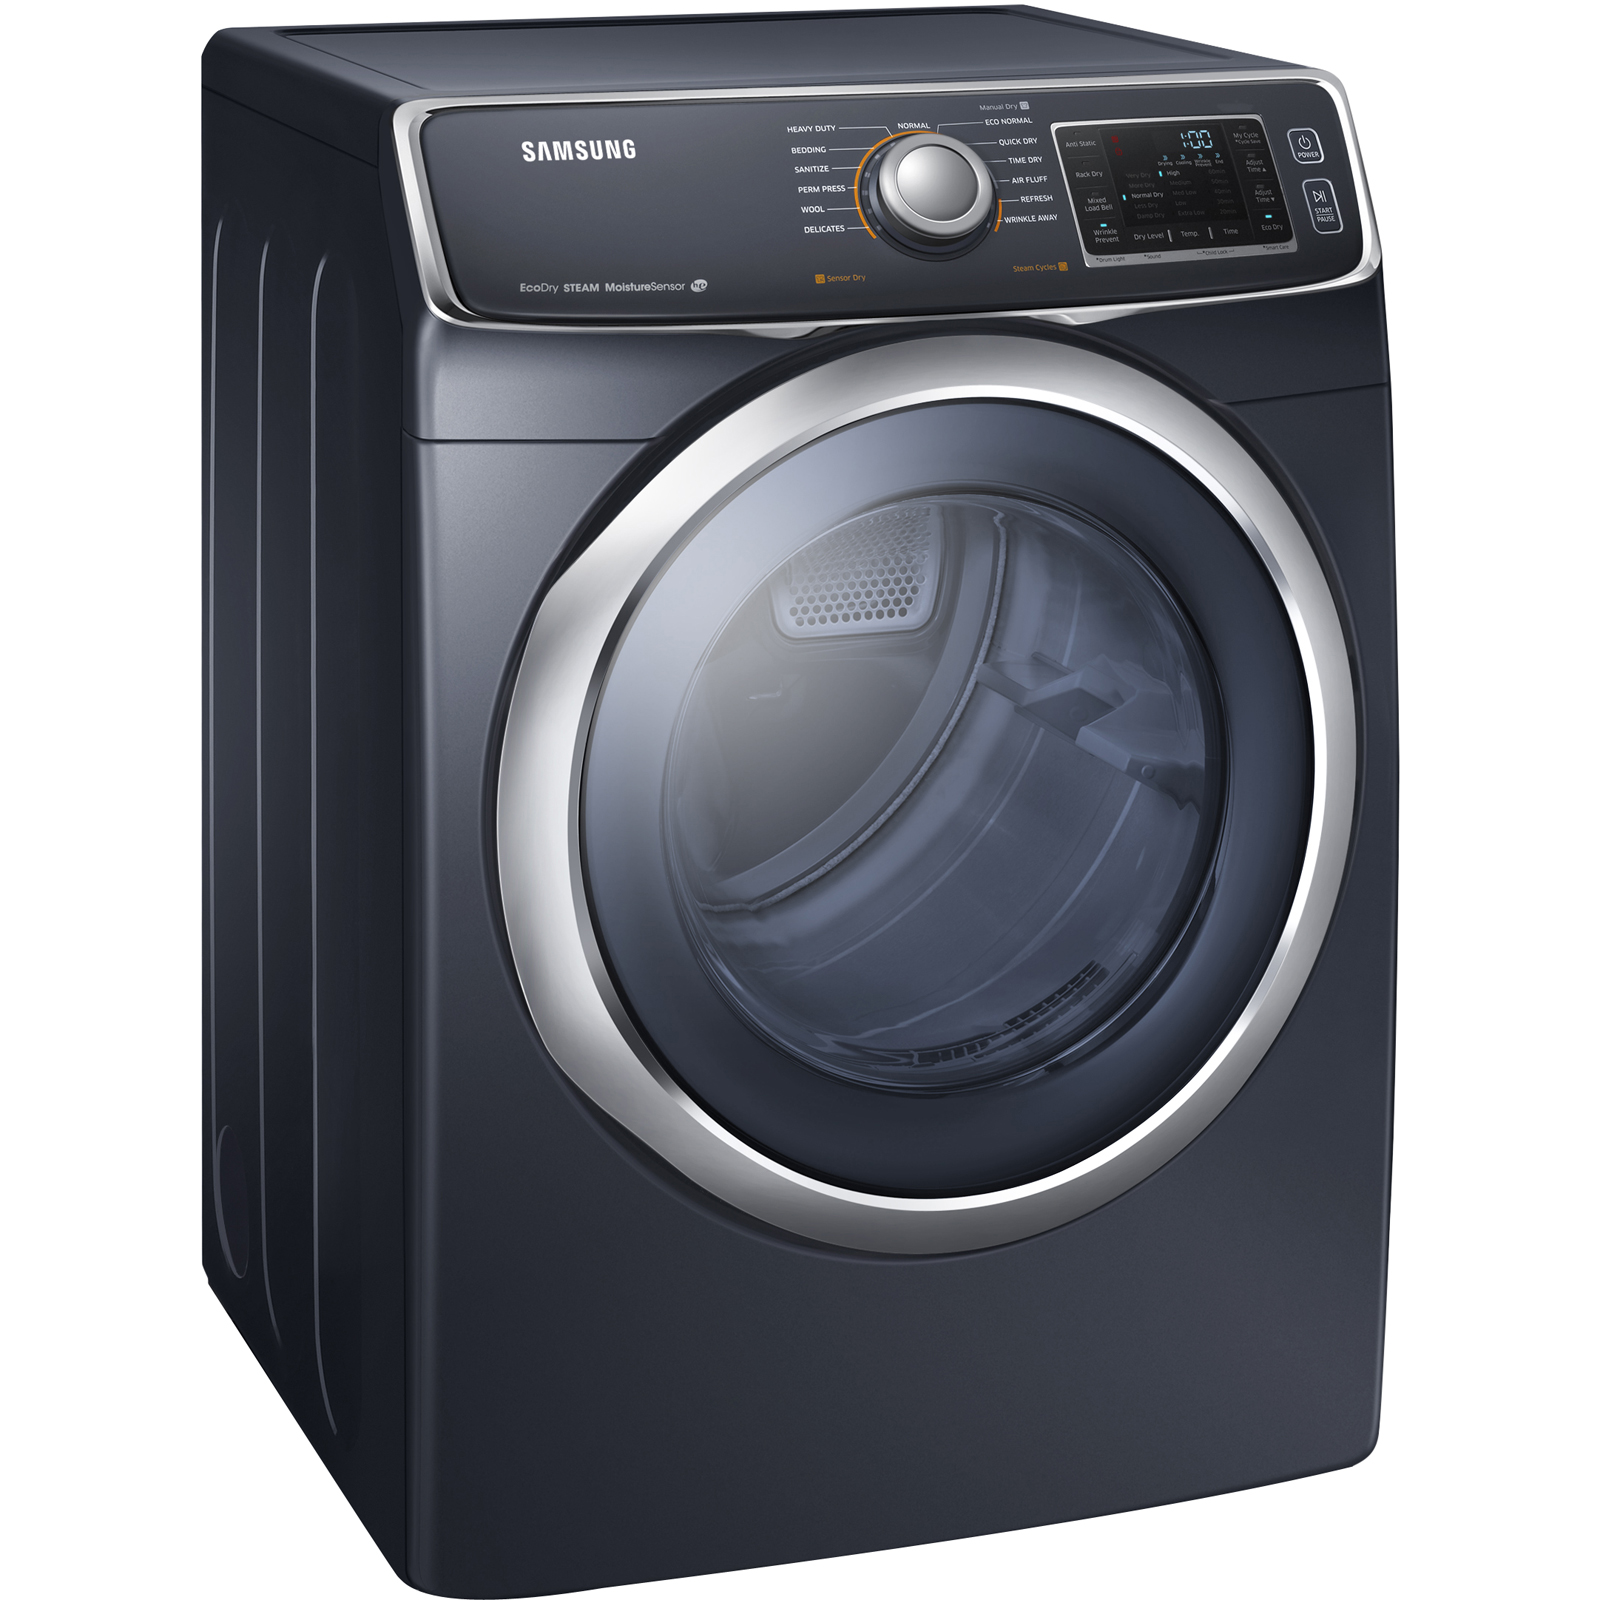 Samsung DV45H6300GG 7.5 cu. ft. Gas Dryer - Onyx